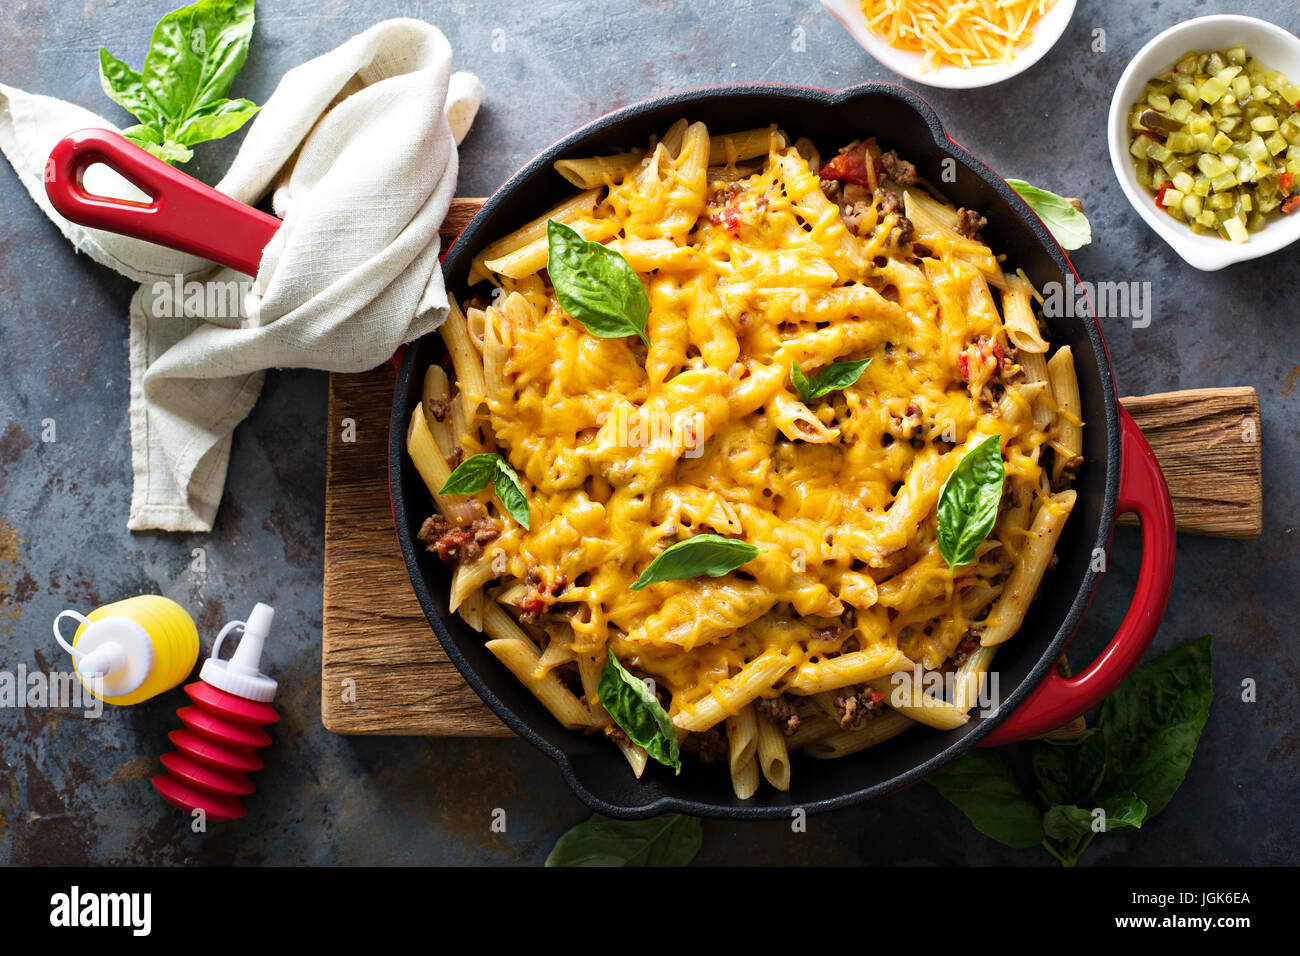 Cheesy pasta bake with ground beef and herbs - Stock Image